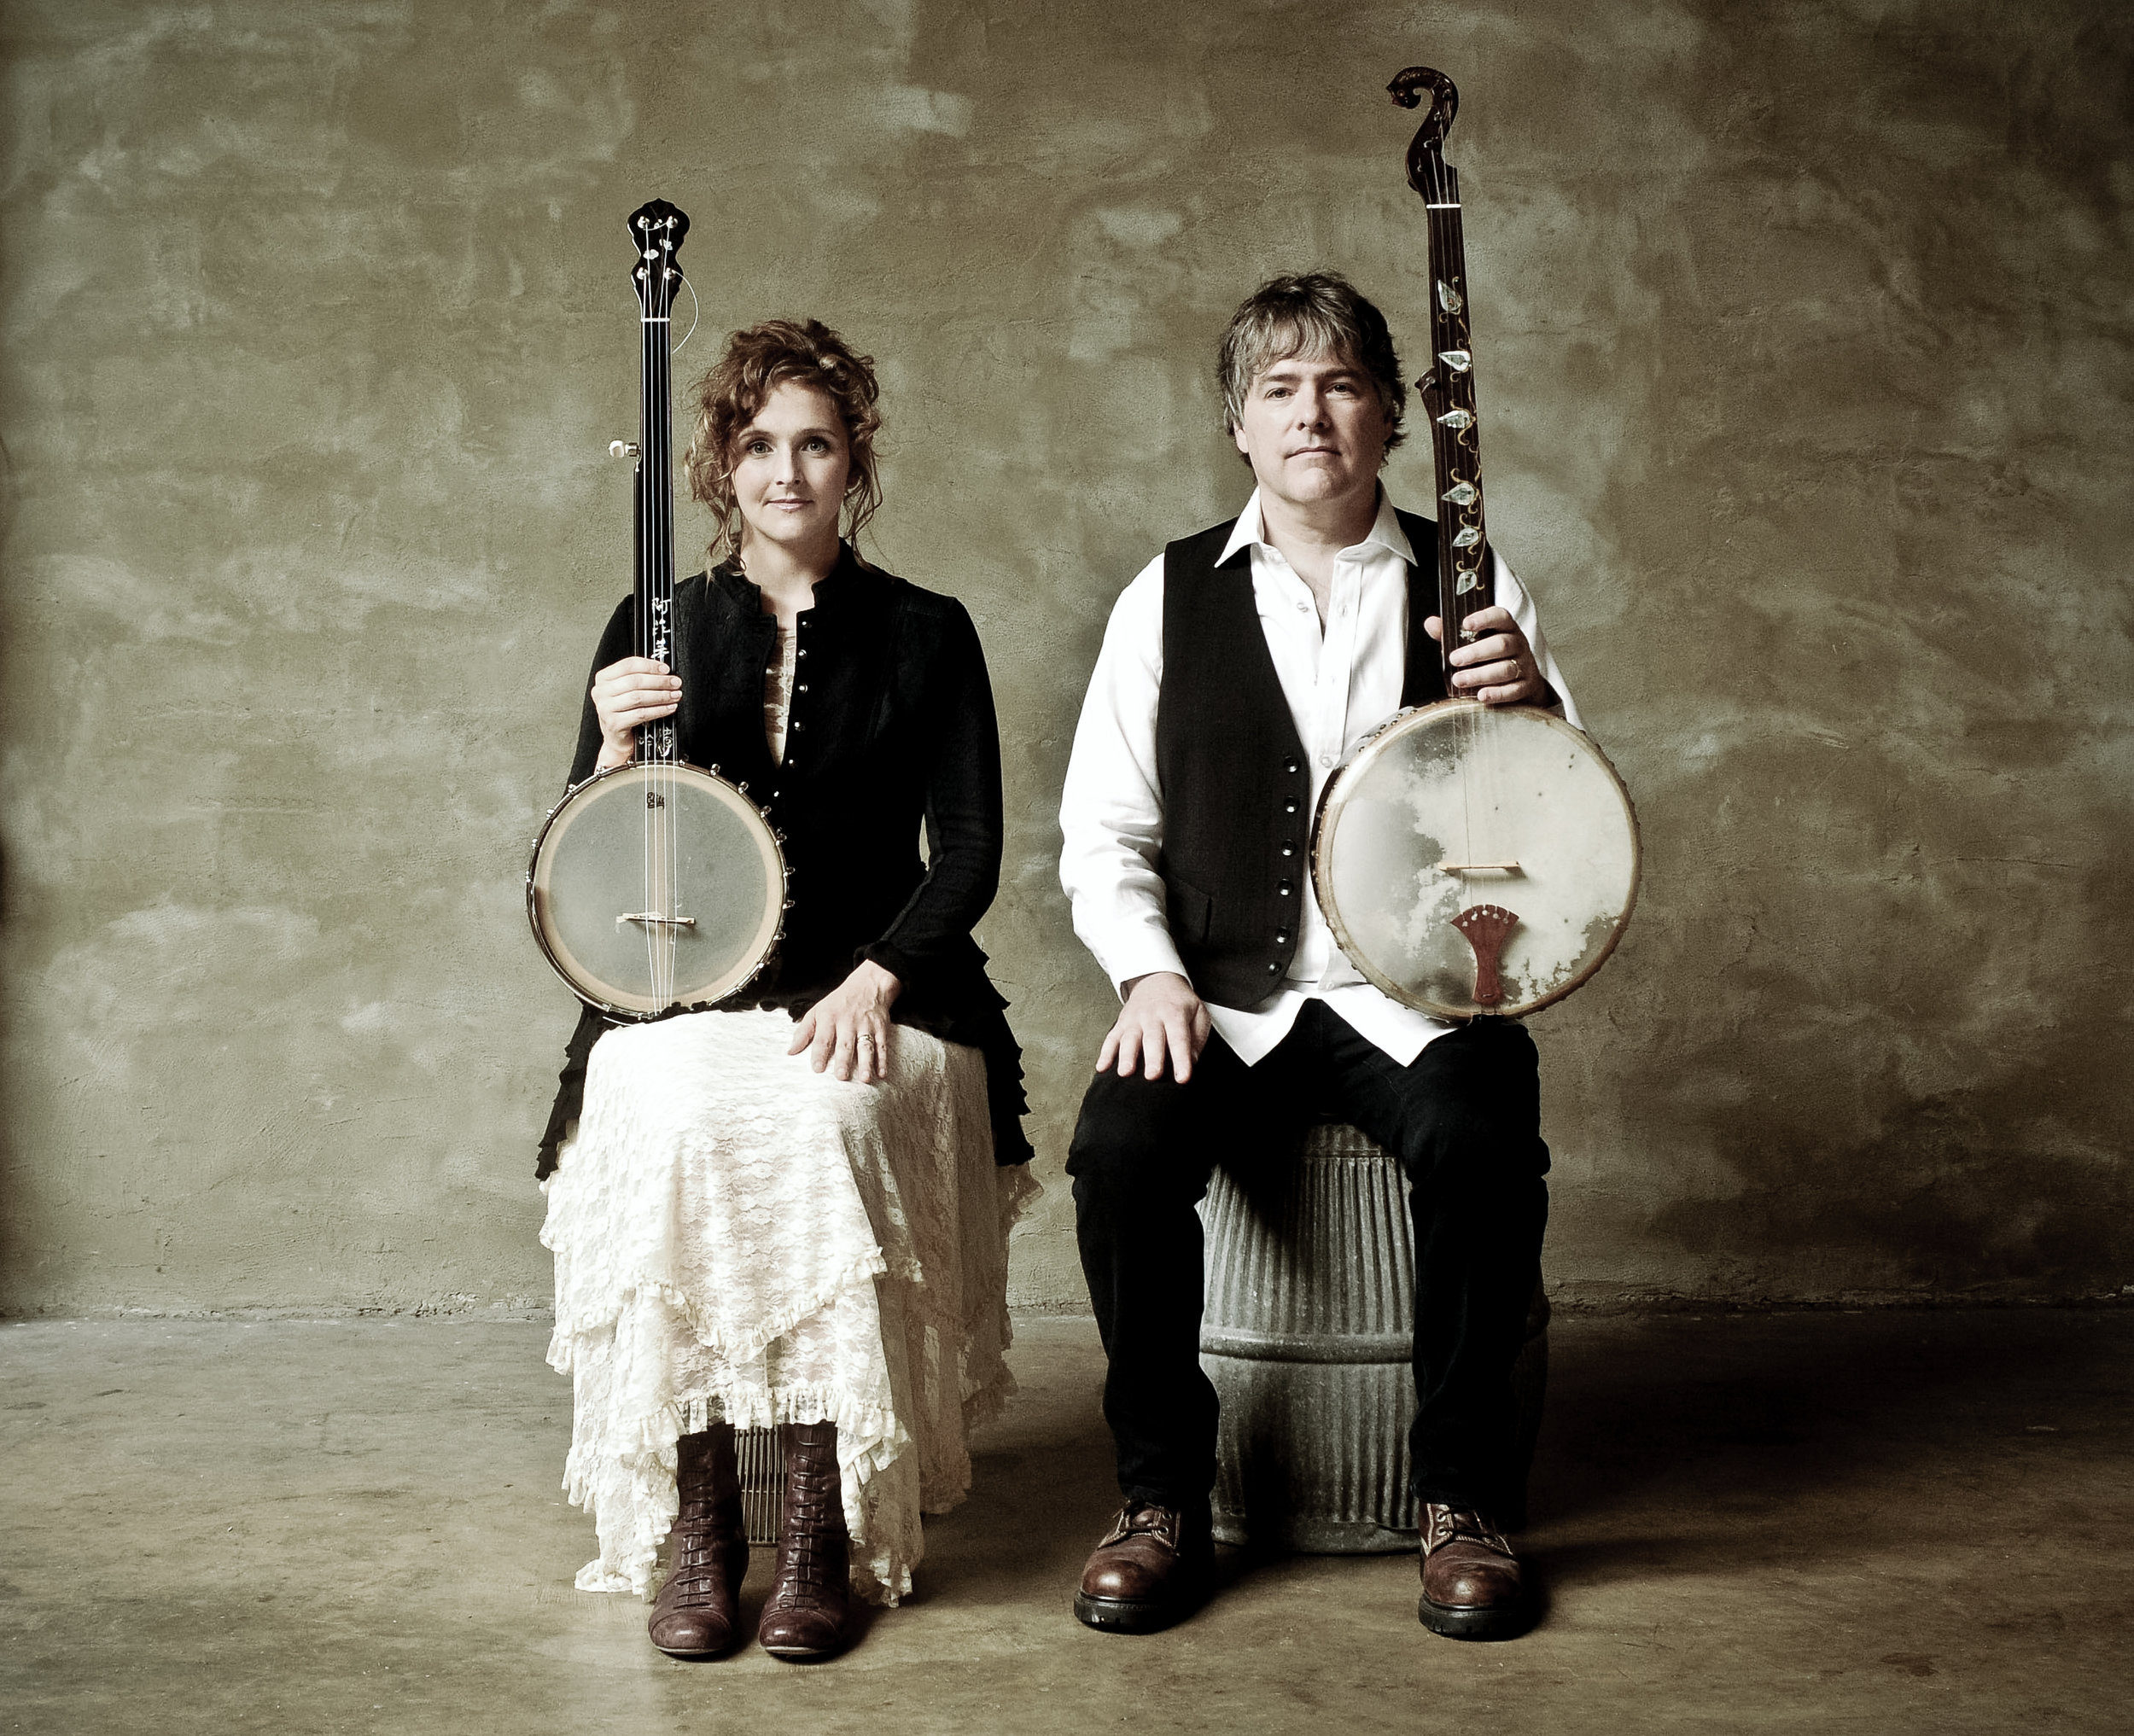 Bela Fleck & Abigail Washburn at SOPAC 4/7 @ 8PM